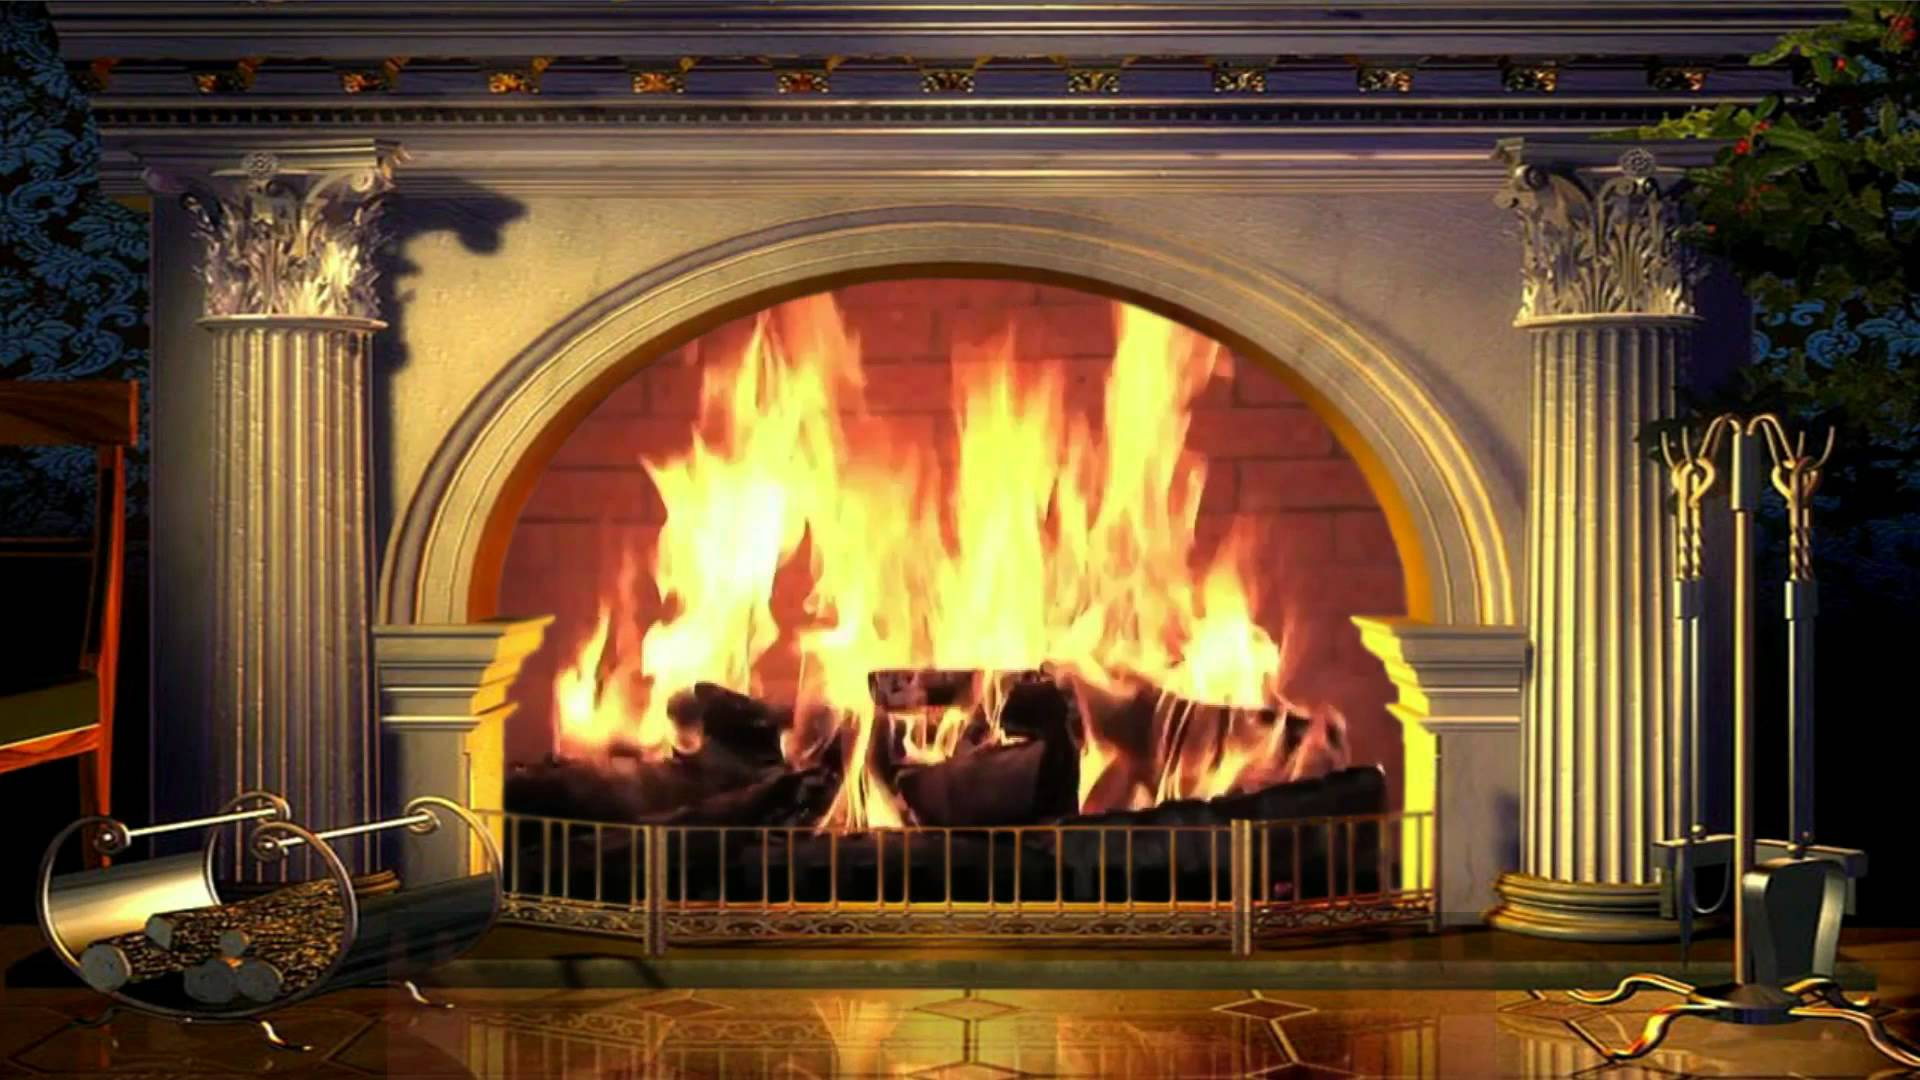 Fall Live Wallpaper Android Fireplace Wallpapers Wallpaper Cave